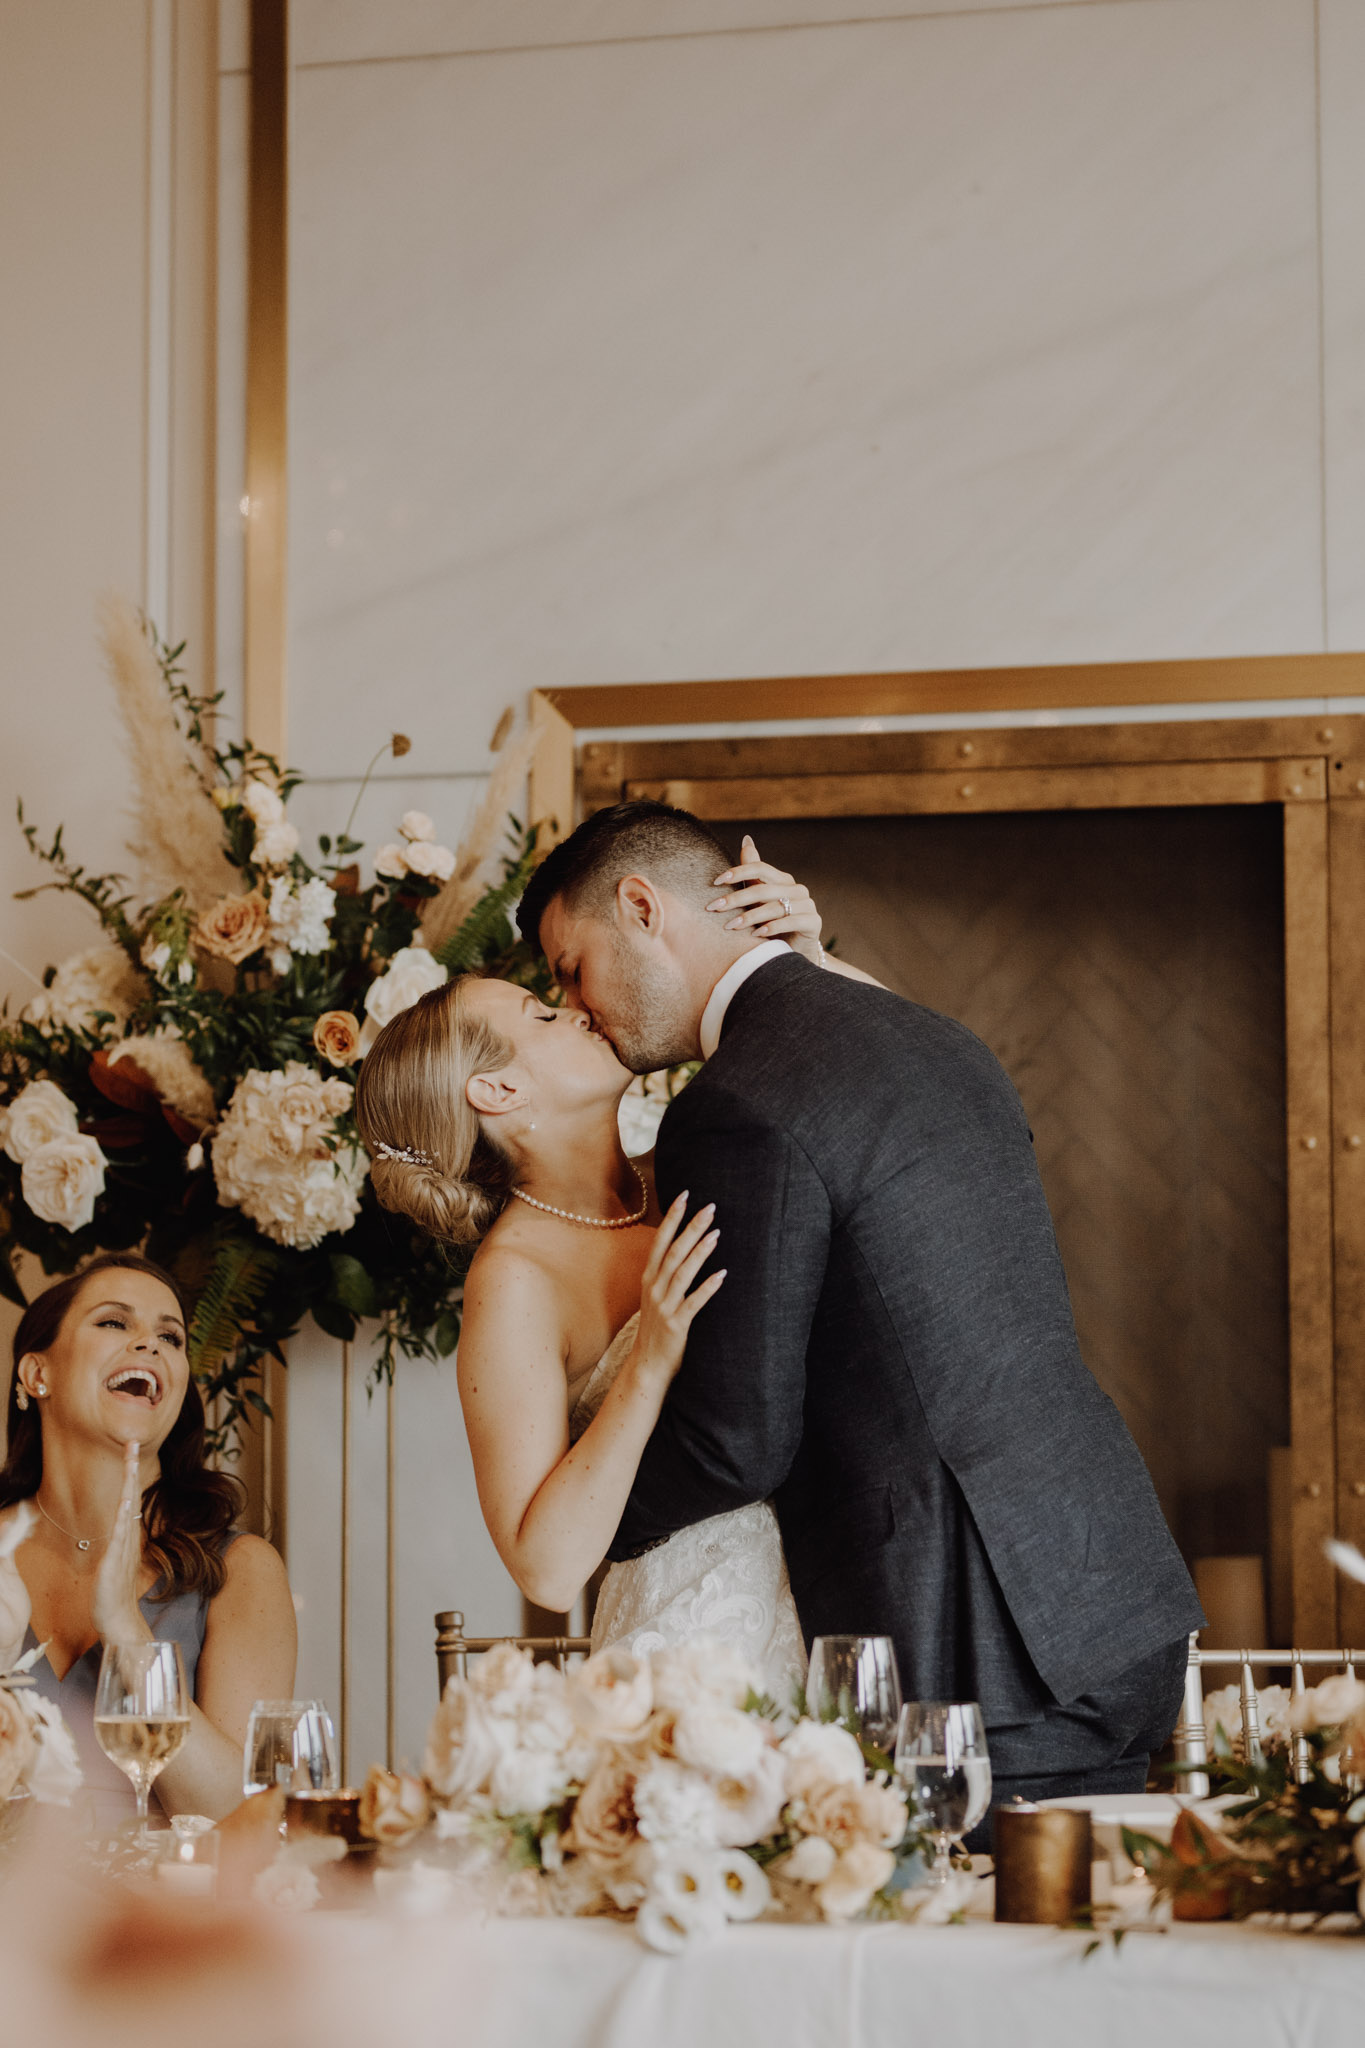 Elora Mill Wedding - bride and groom kiss at the table